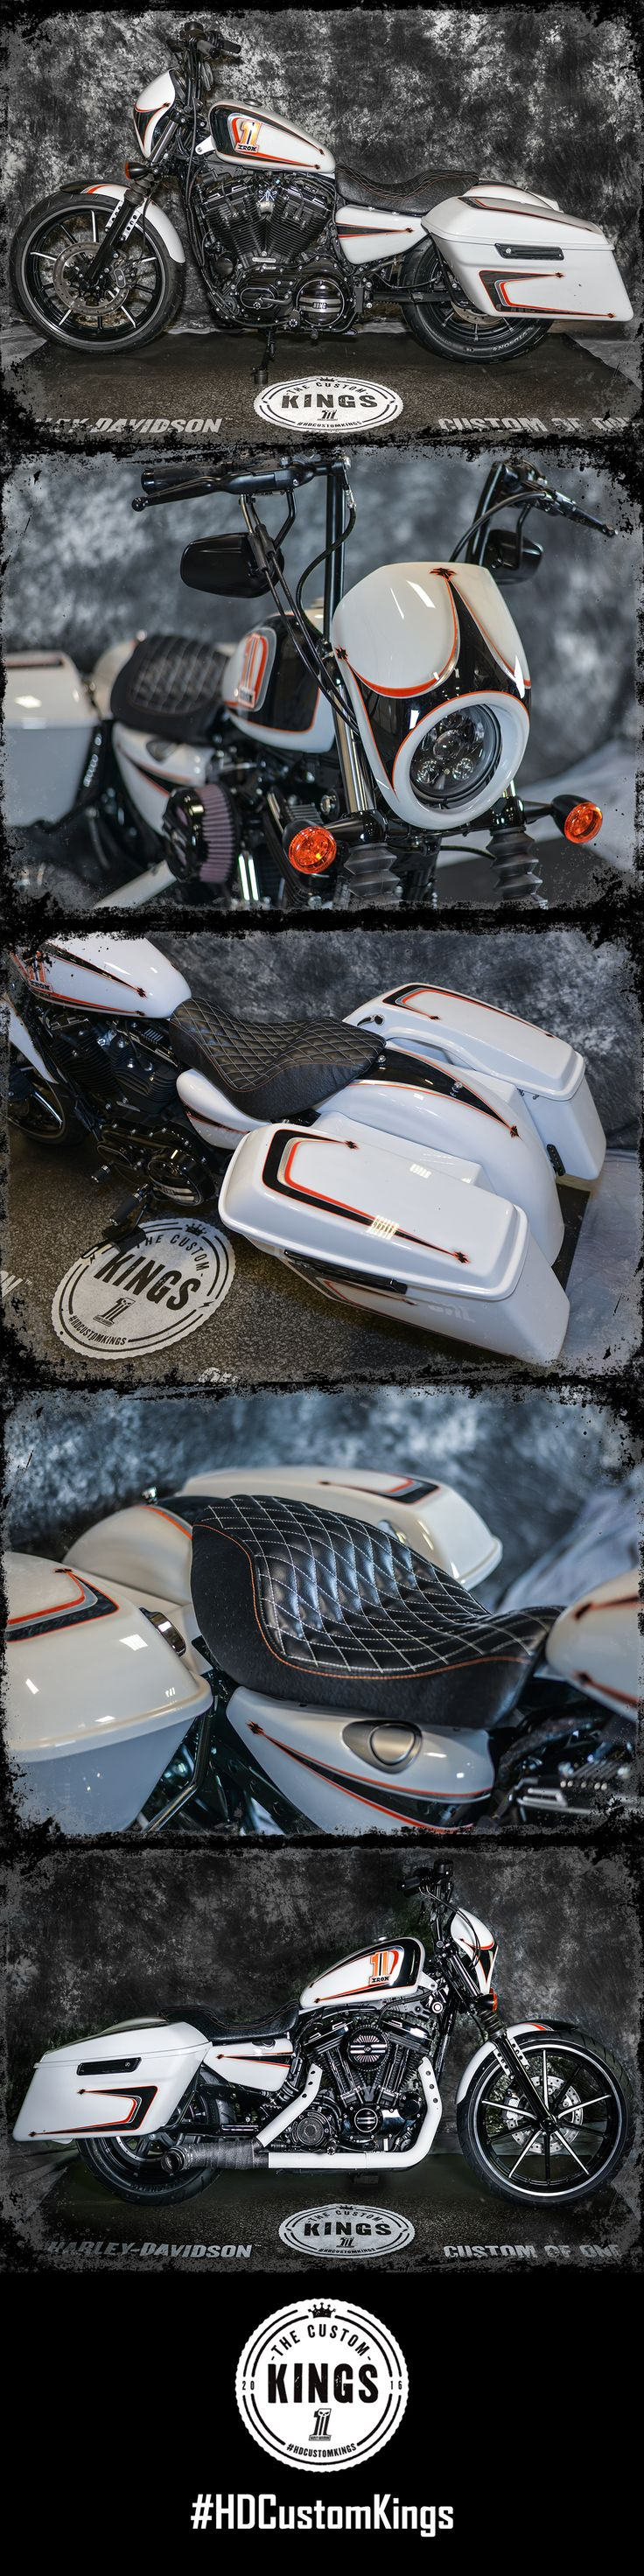 "Runner-up Four Rivers Harley-Davidson took a stock 2016 #Iron883 and turned it into ""Go-Damnit"" - a Sportster bagger ready to break necks. 